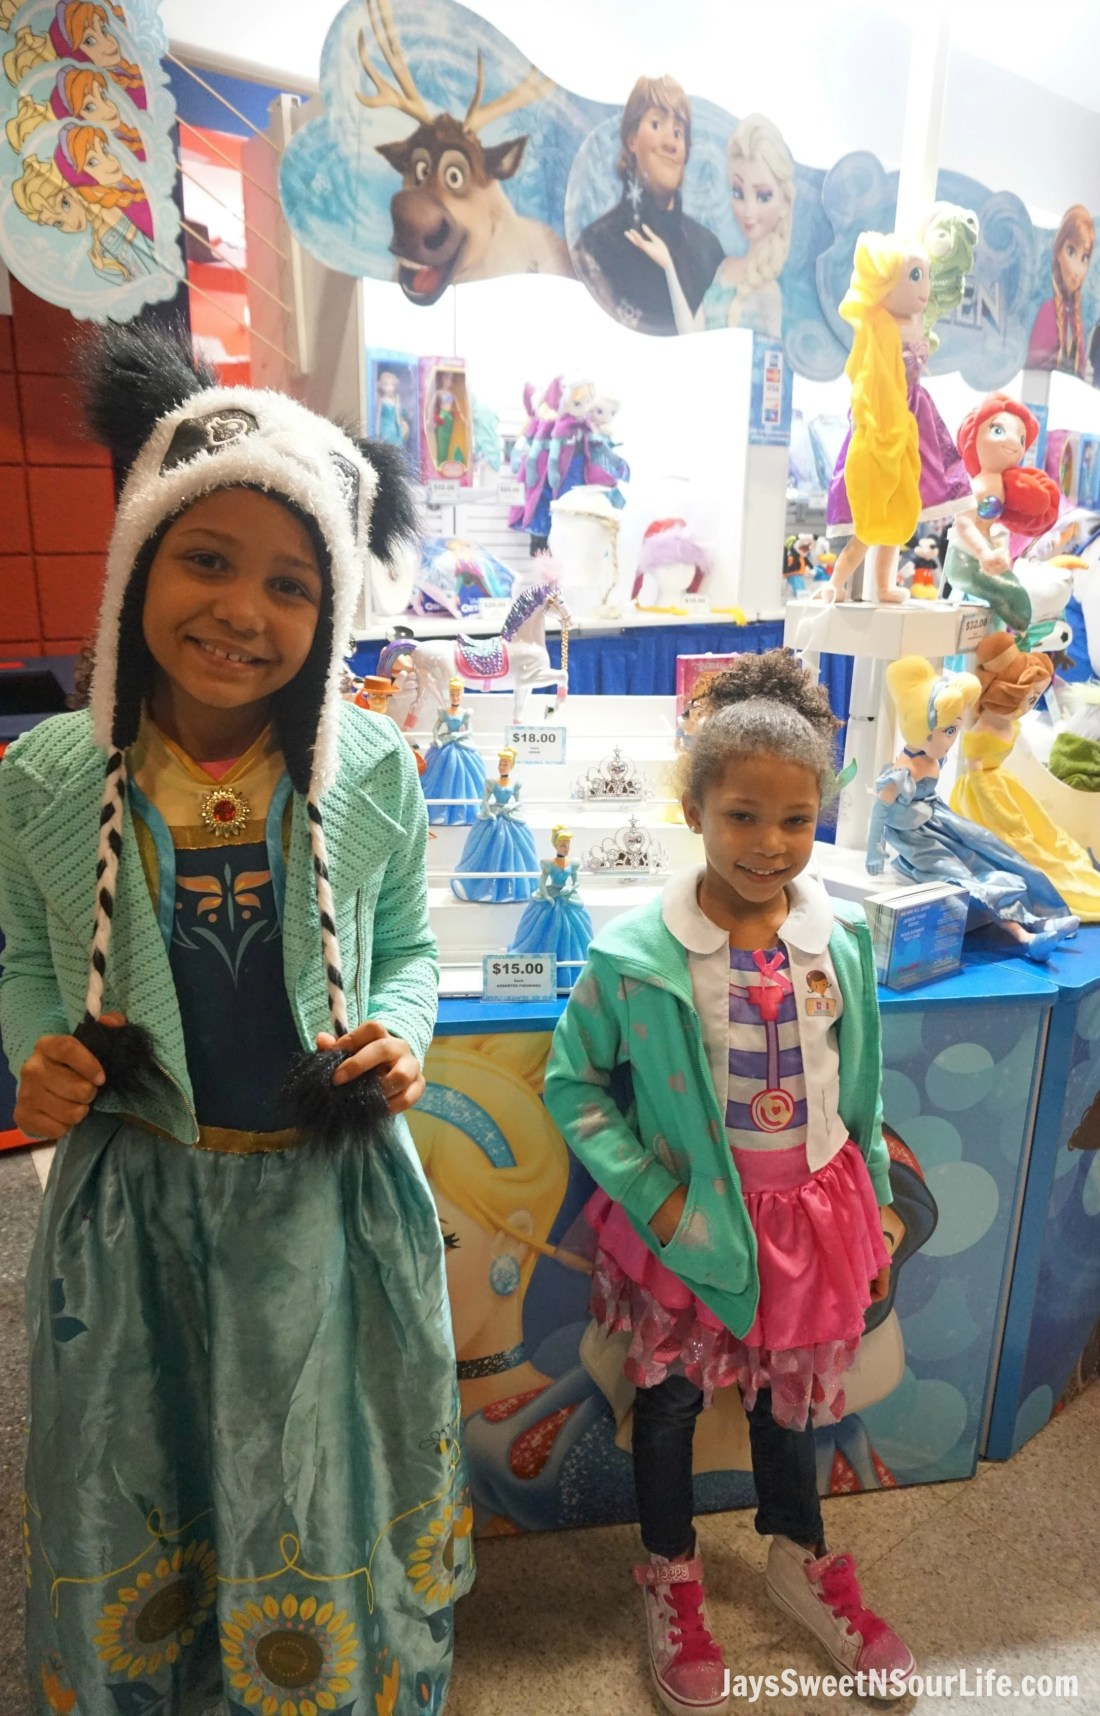 Disney On Ice Presents Frozen coming to a town near you. The girls standing in front of a Disney themed booth selling gifts from the movie Frozen and much more.